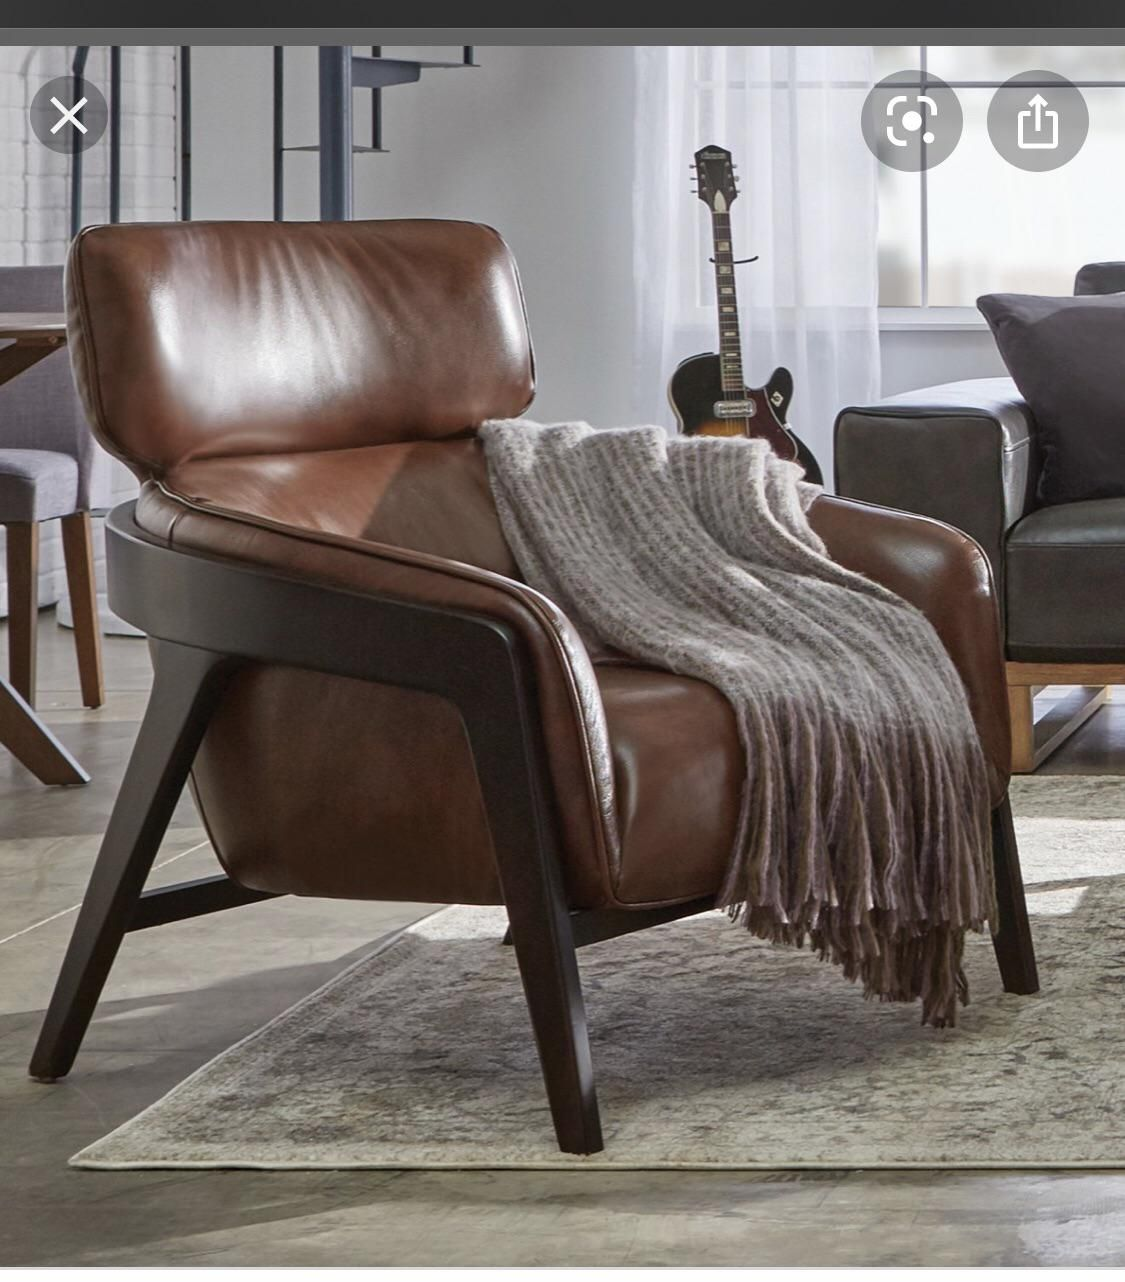 180 Chairs Ideas In 2021 Home Decor, Leather Living Room Chair